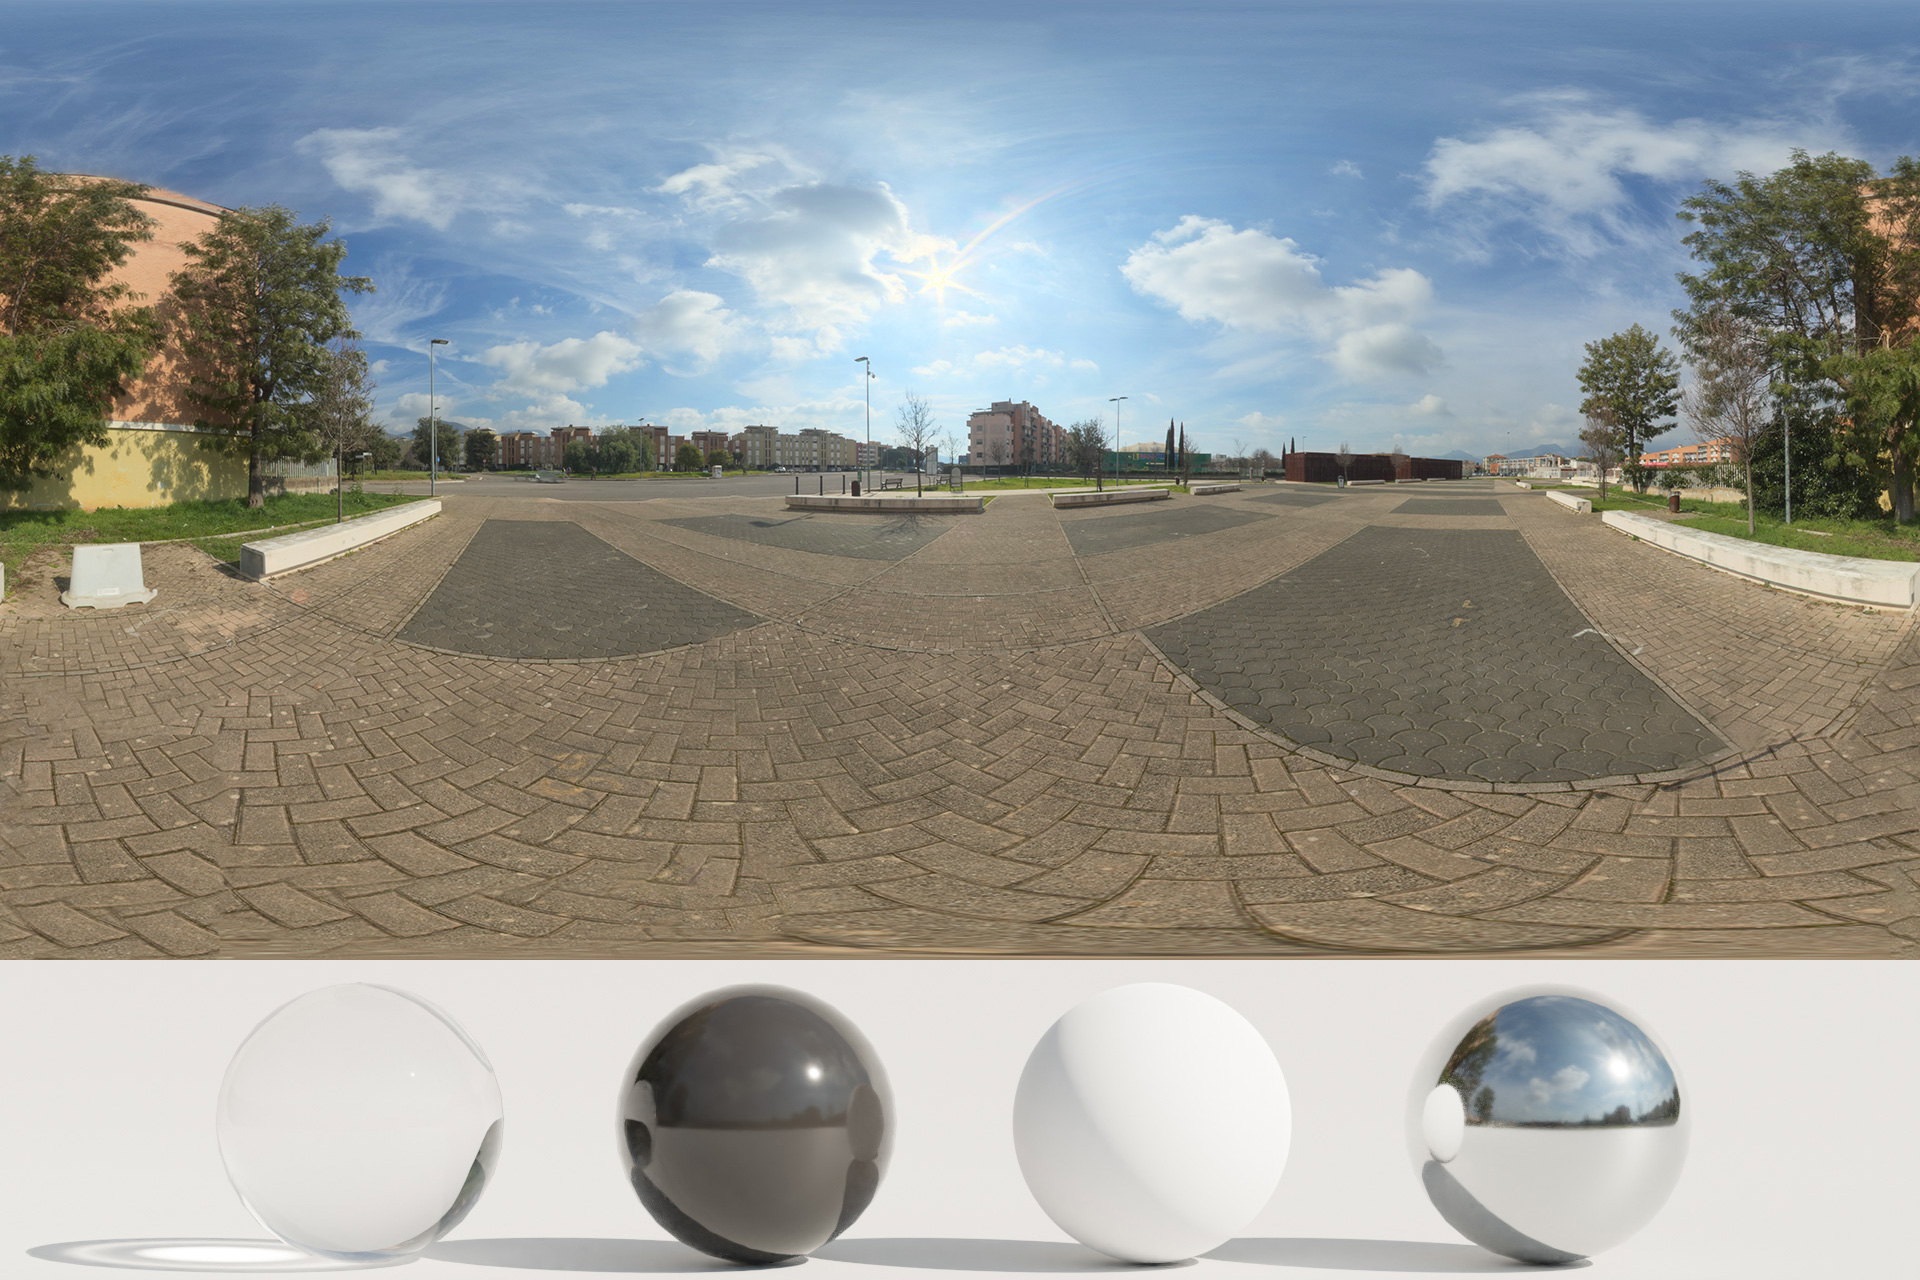 HDRi – Clouds and Buildings